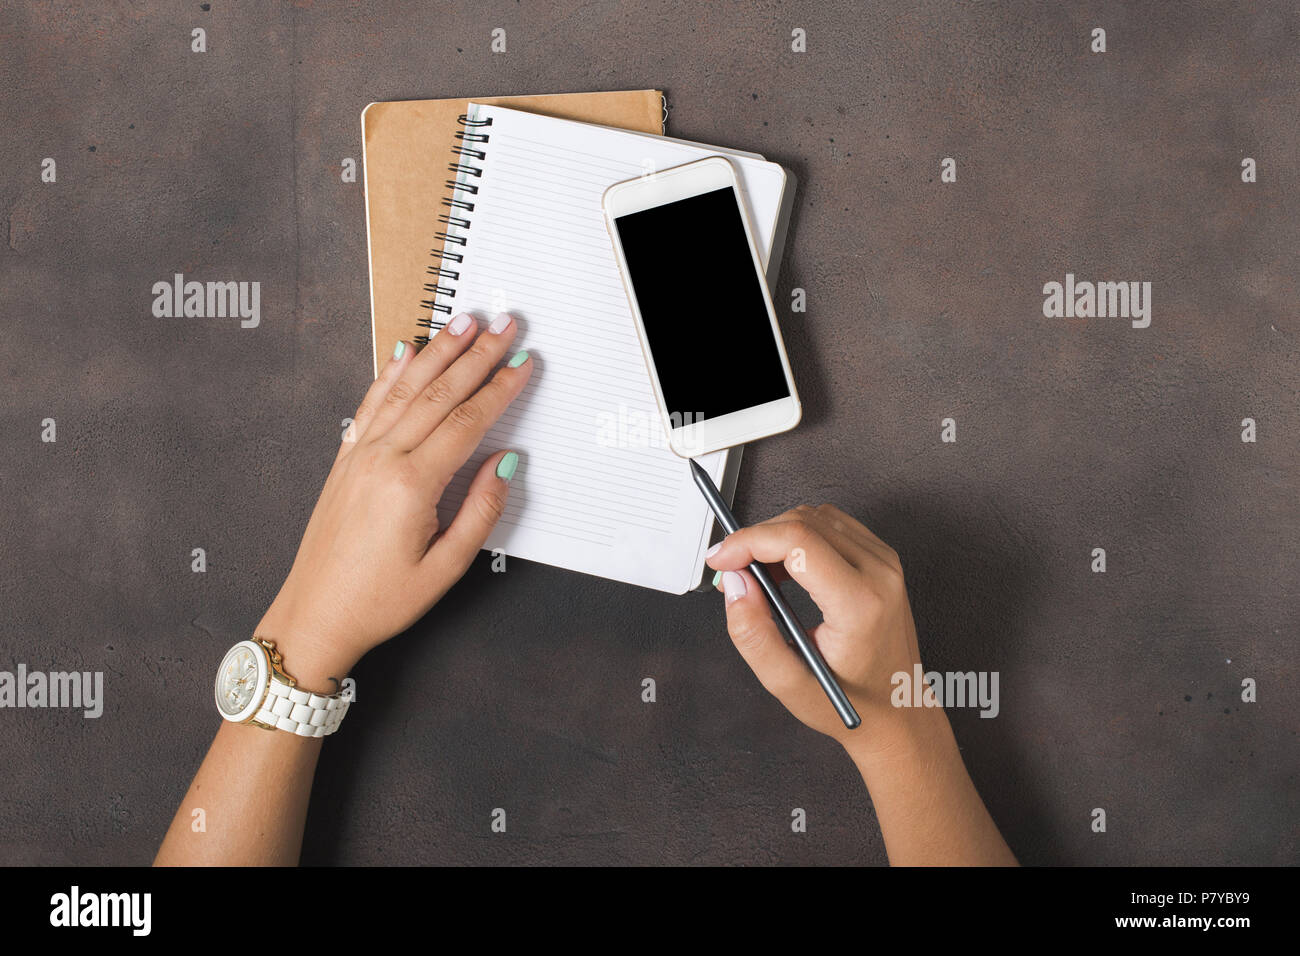 Women write in a notebook in the workplace. Flat lay, top view. Concept feminine working place - Stock Image